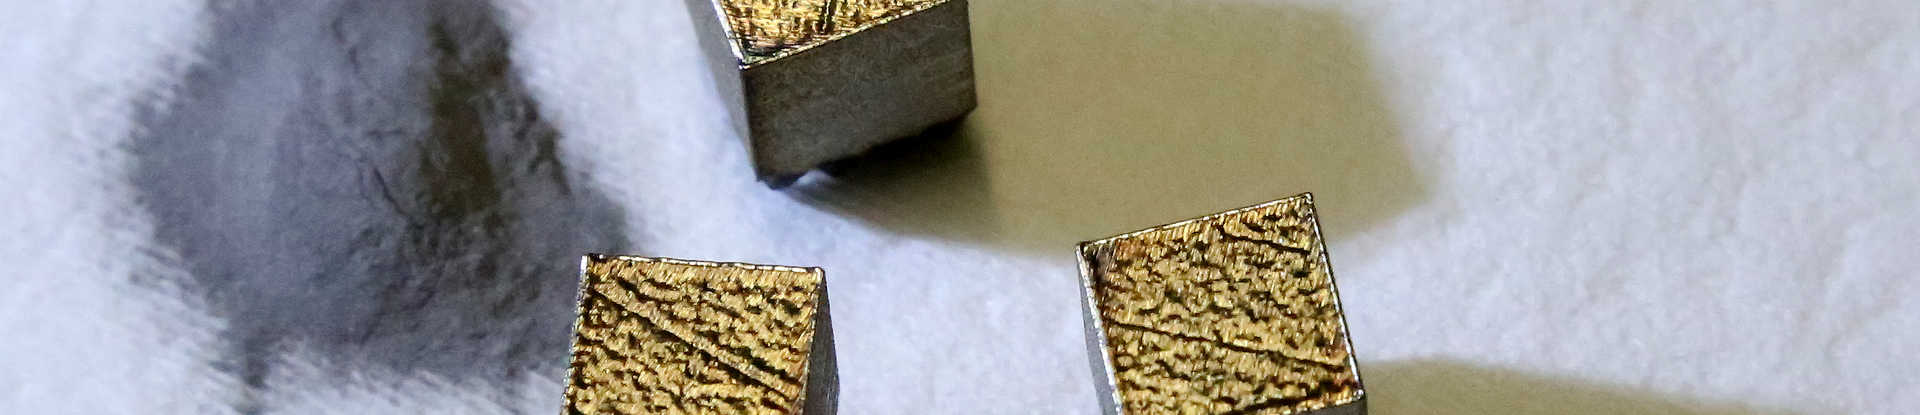 Metal powder in a pile on the left, three small metal cubes on the right